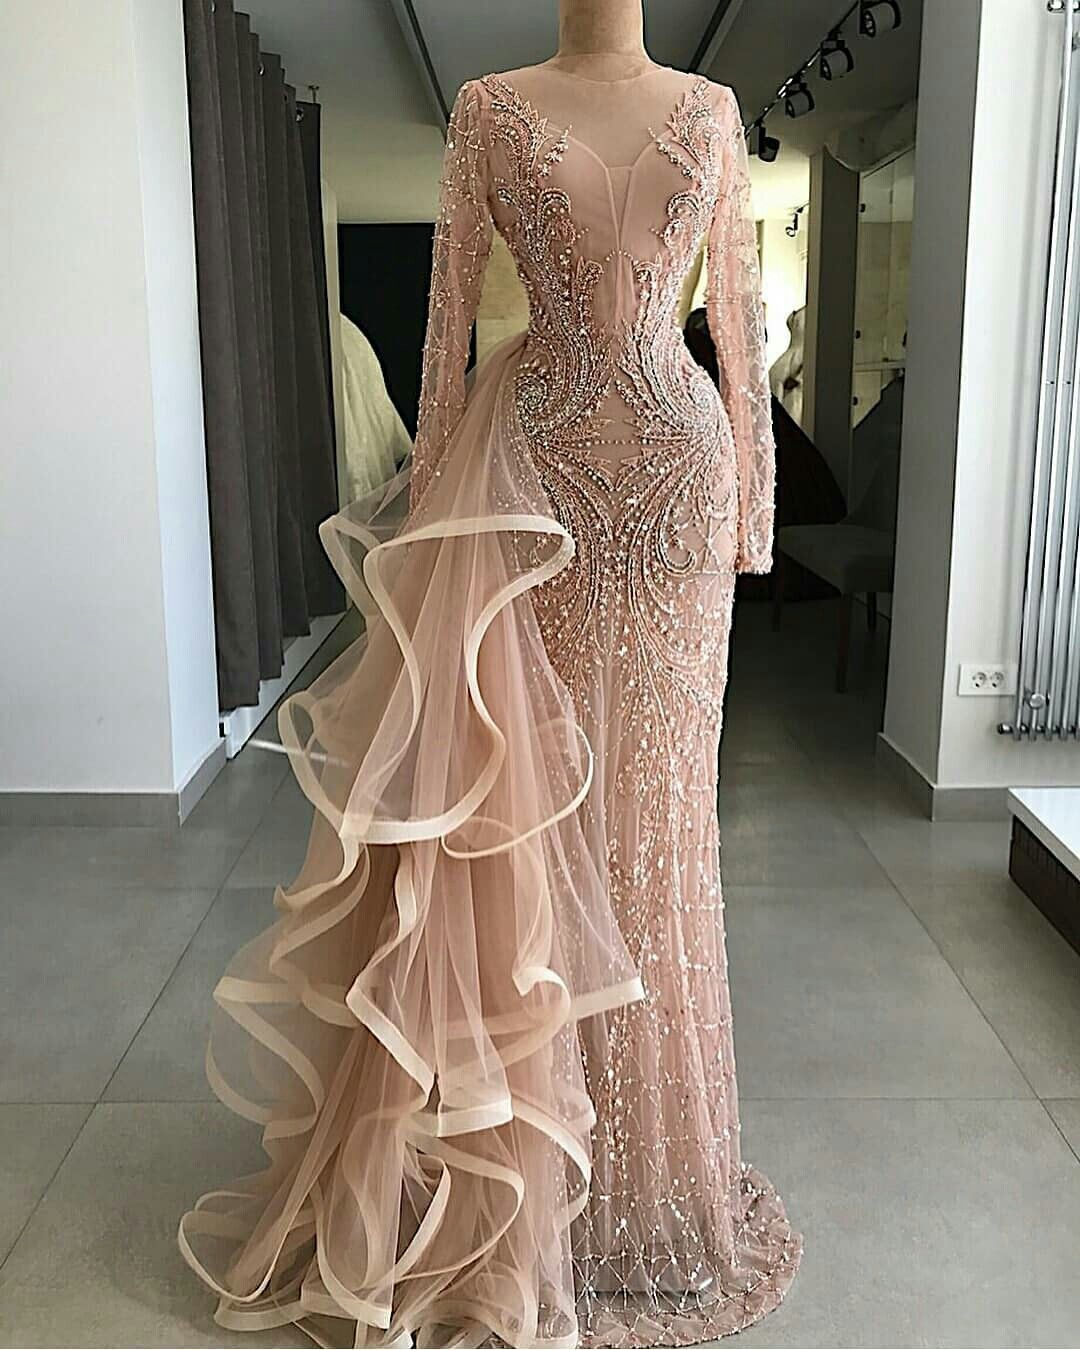 Pin by marsha dorta on gorgeous gowns u party dresses in